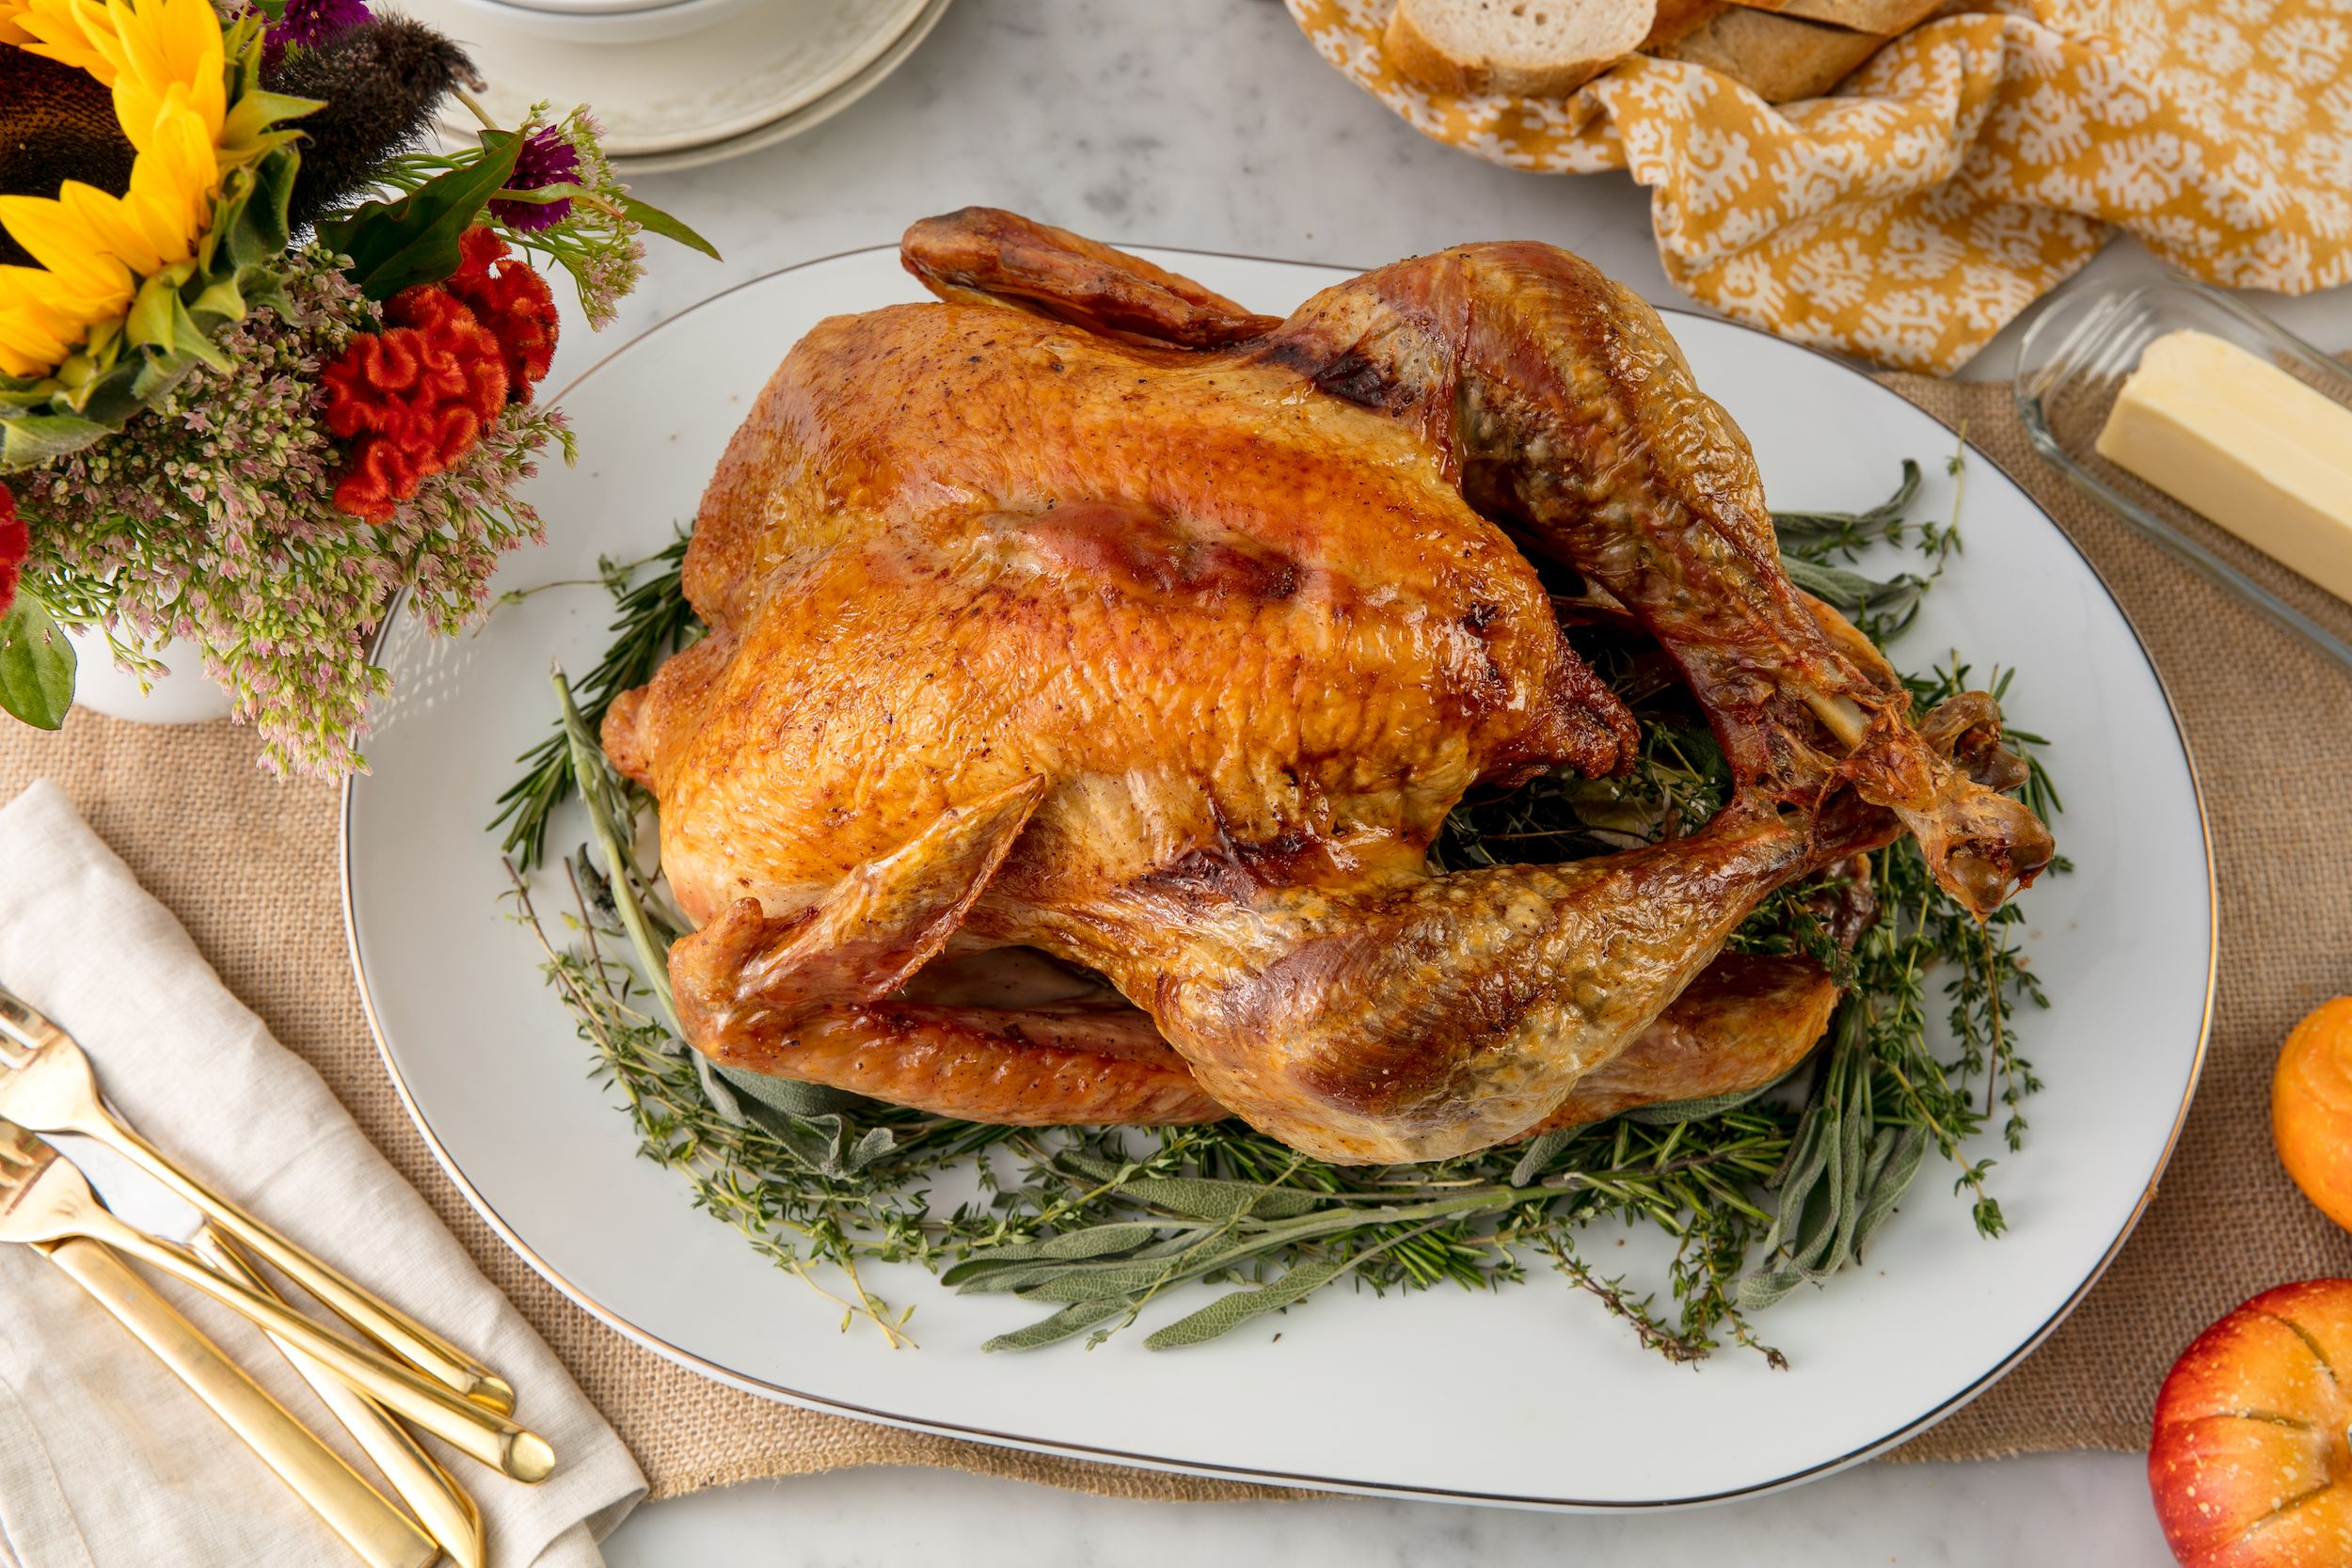 Best Roast Turkey Recipe How To Cook A Perfect Turkey In The Oven